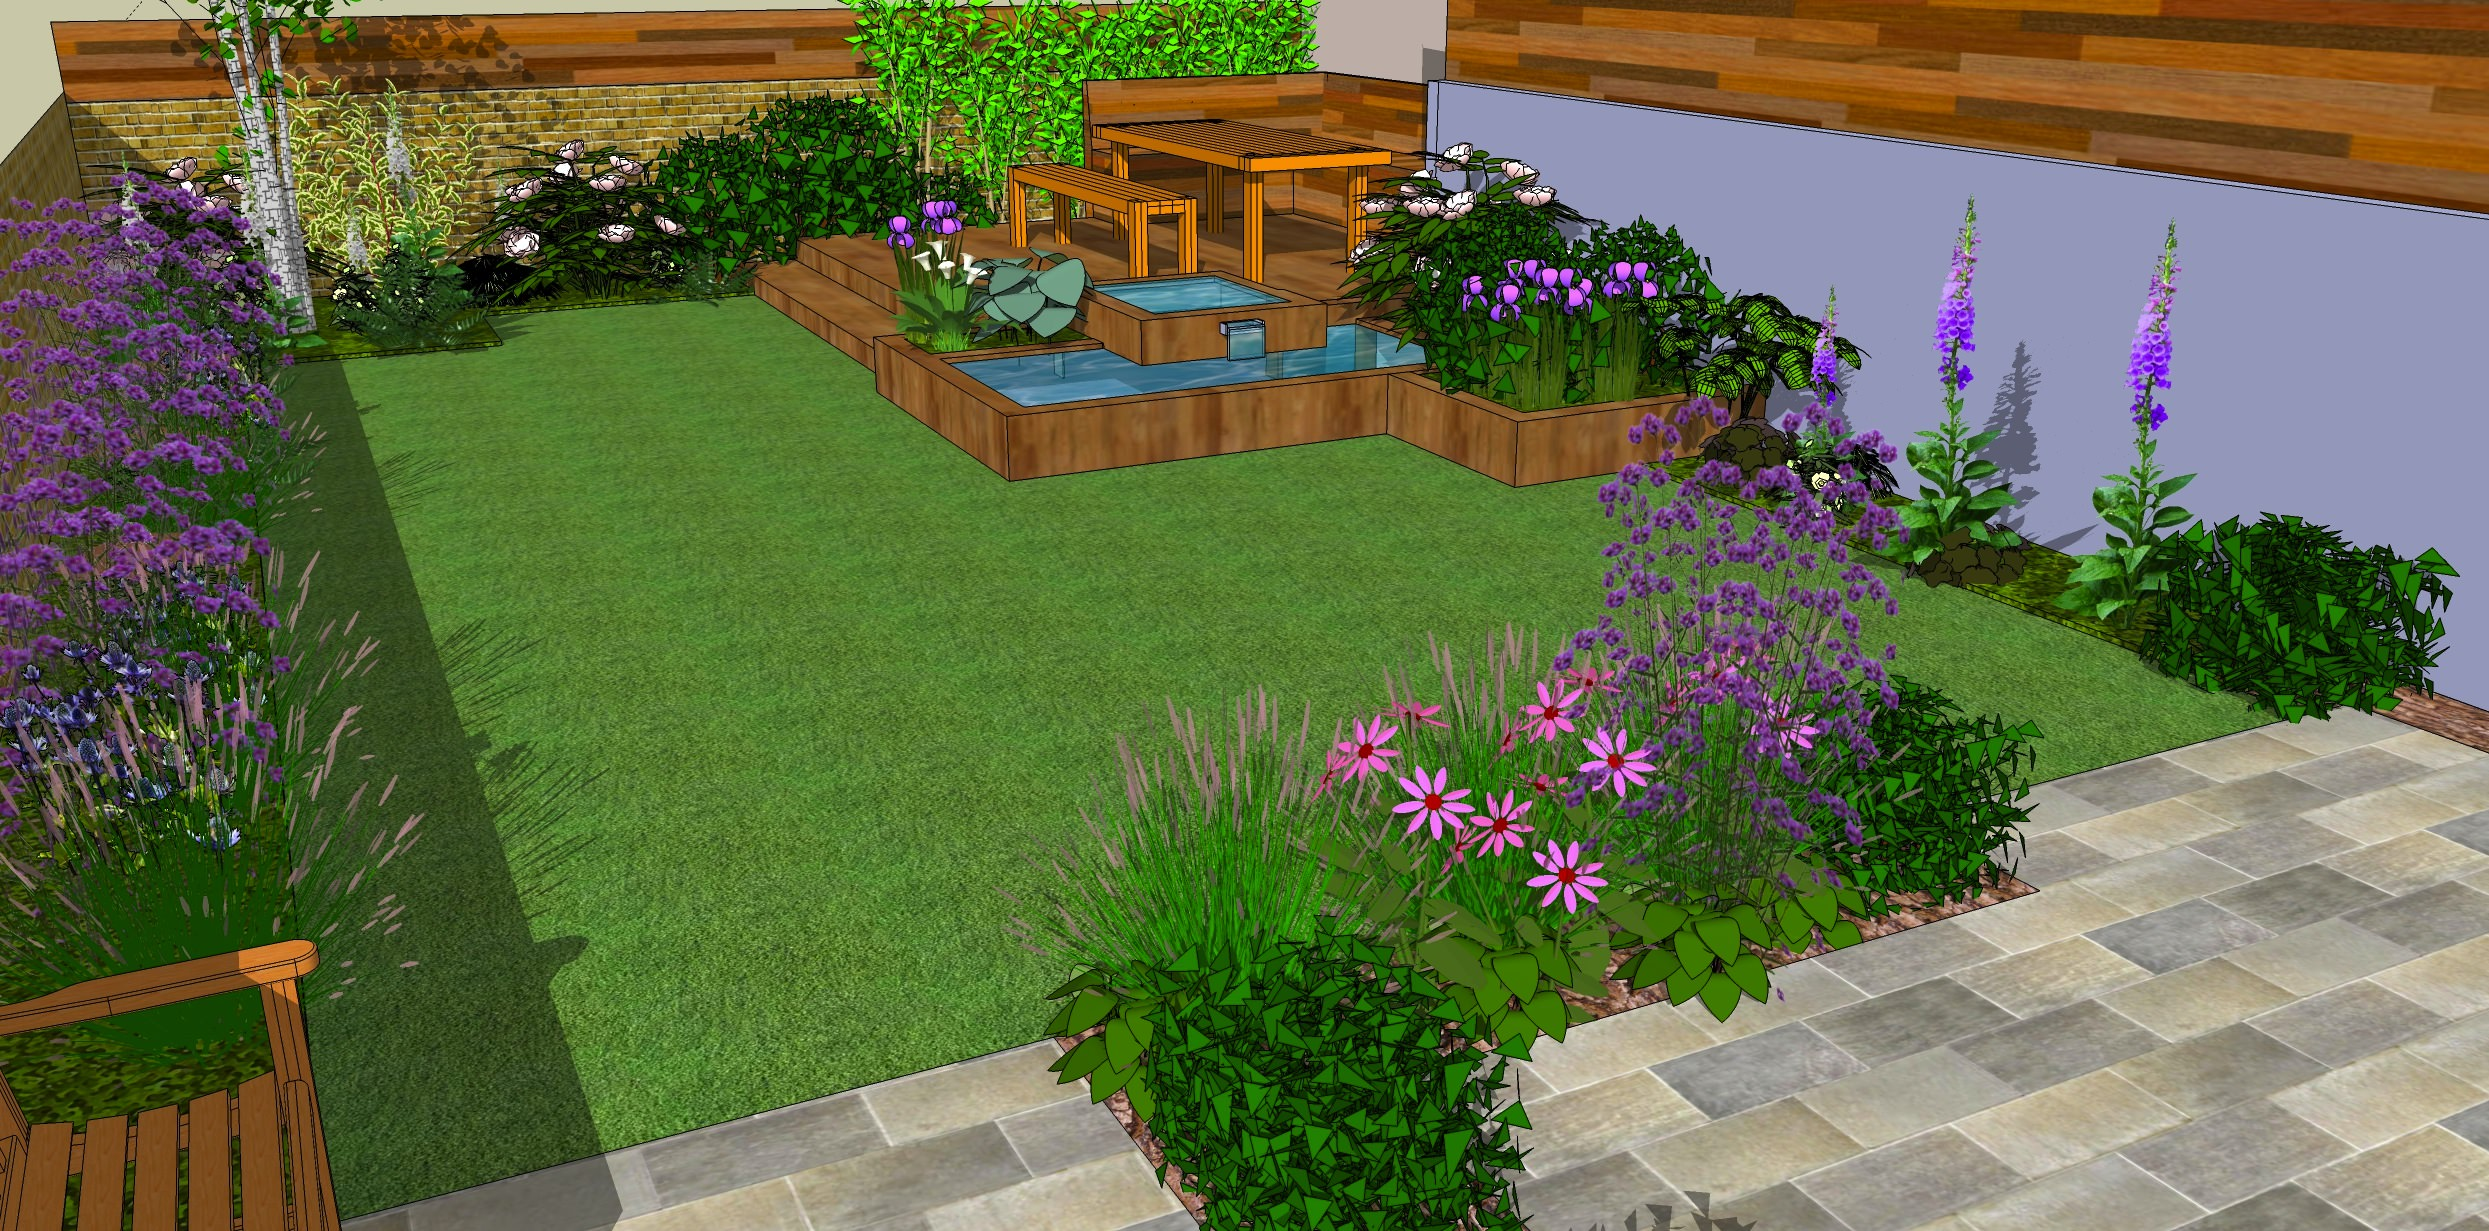 Low maintenance garden designs garden club london for Garden design plans